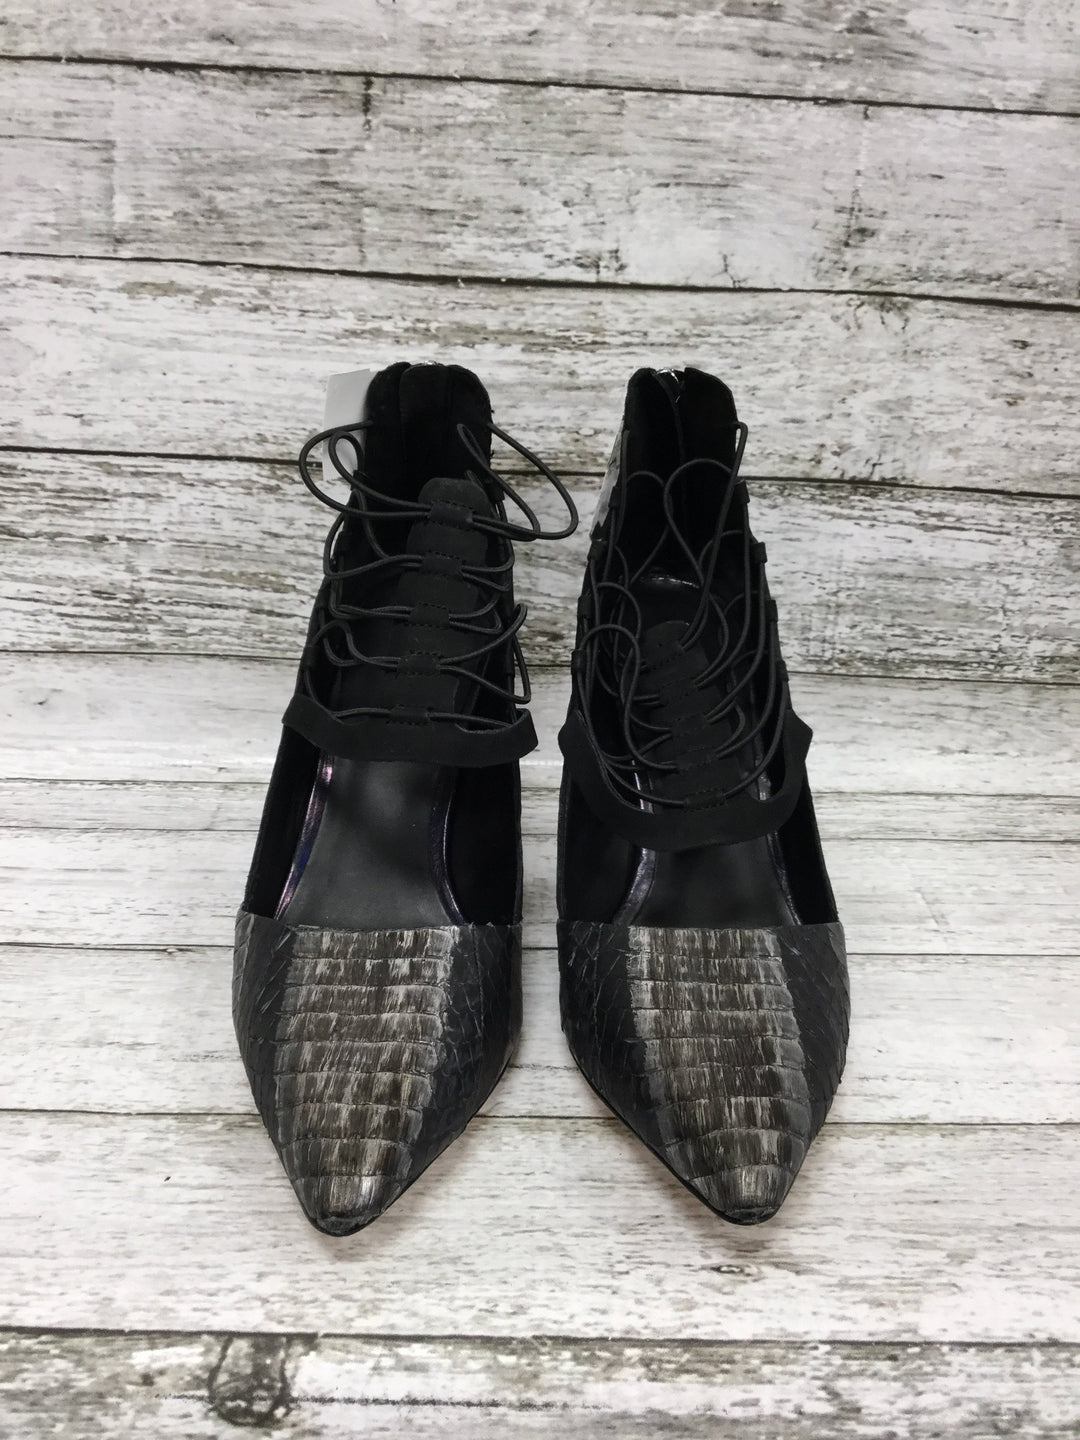 Photo #2 - brand: lamb , style: shoes high heel , color: black silver , size: 9 , sku: 127-4559-16105, , heels by lamb in good condition. zipper in back.